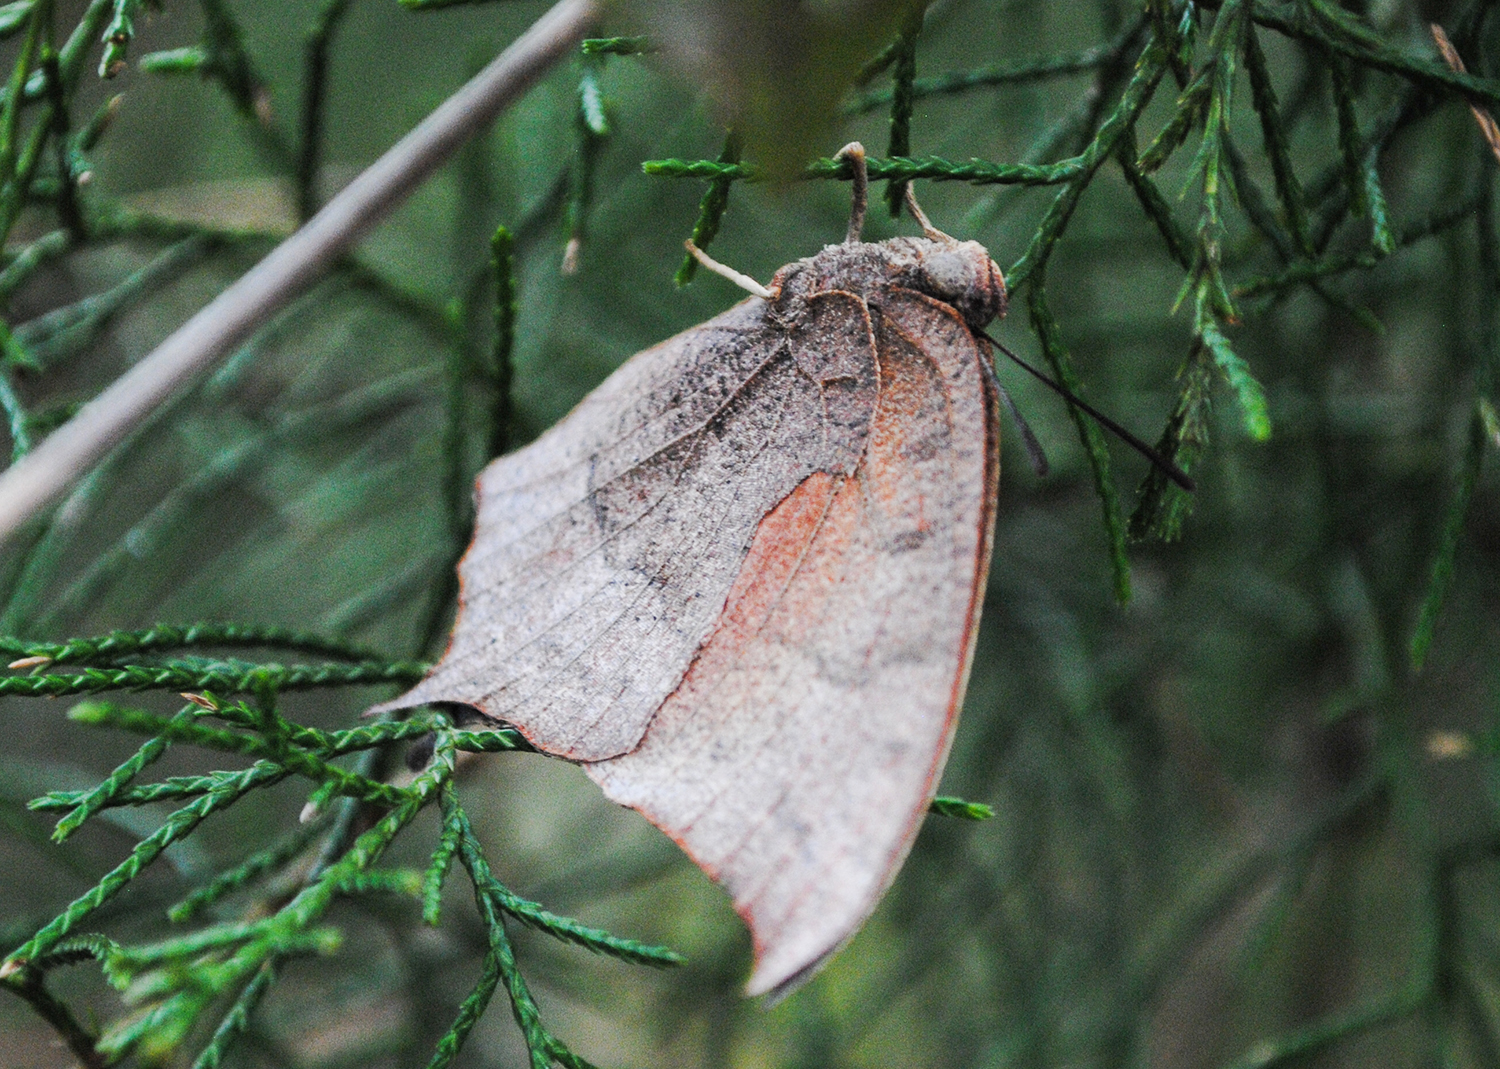 Eventually, it landed in an eastern red cedar. And, I leaned over a barbed wire fence and held the camera high to try to get some good detail of the Goatweed Leafwing.